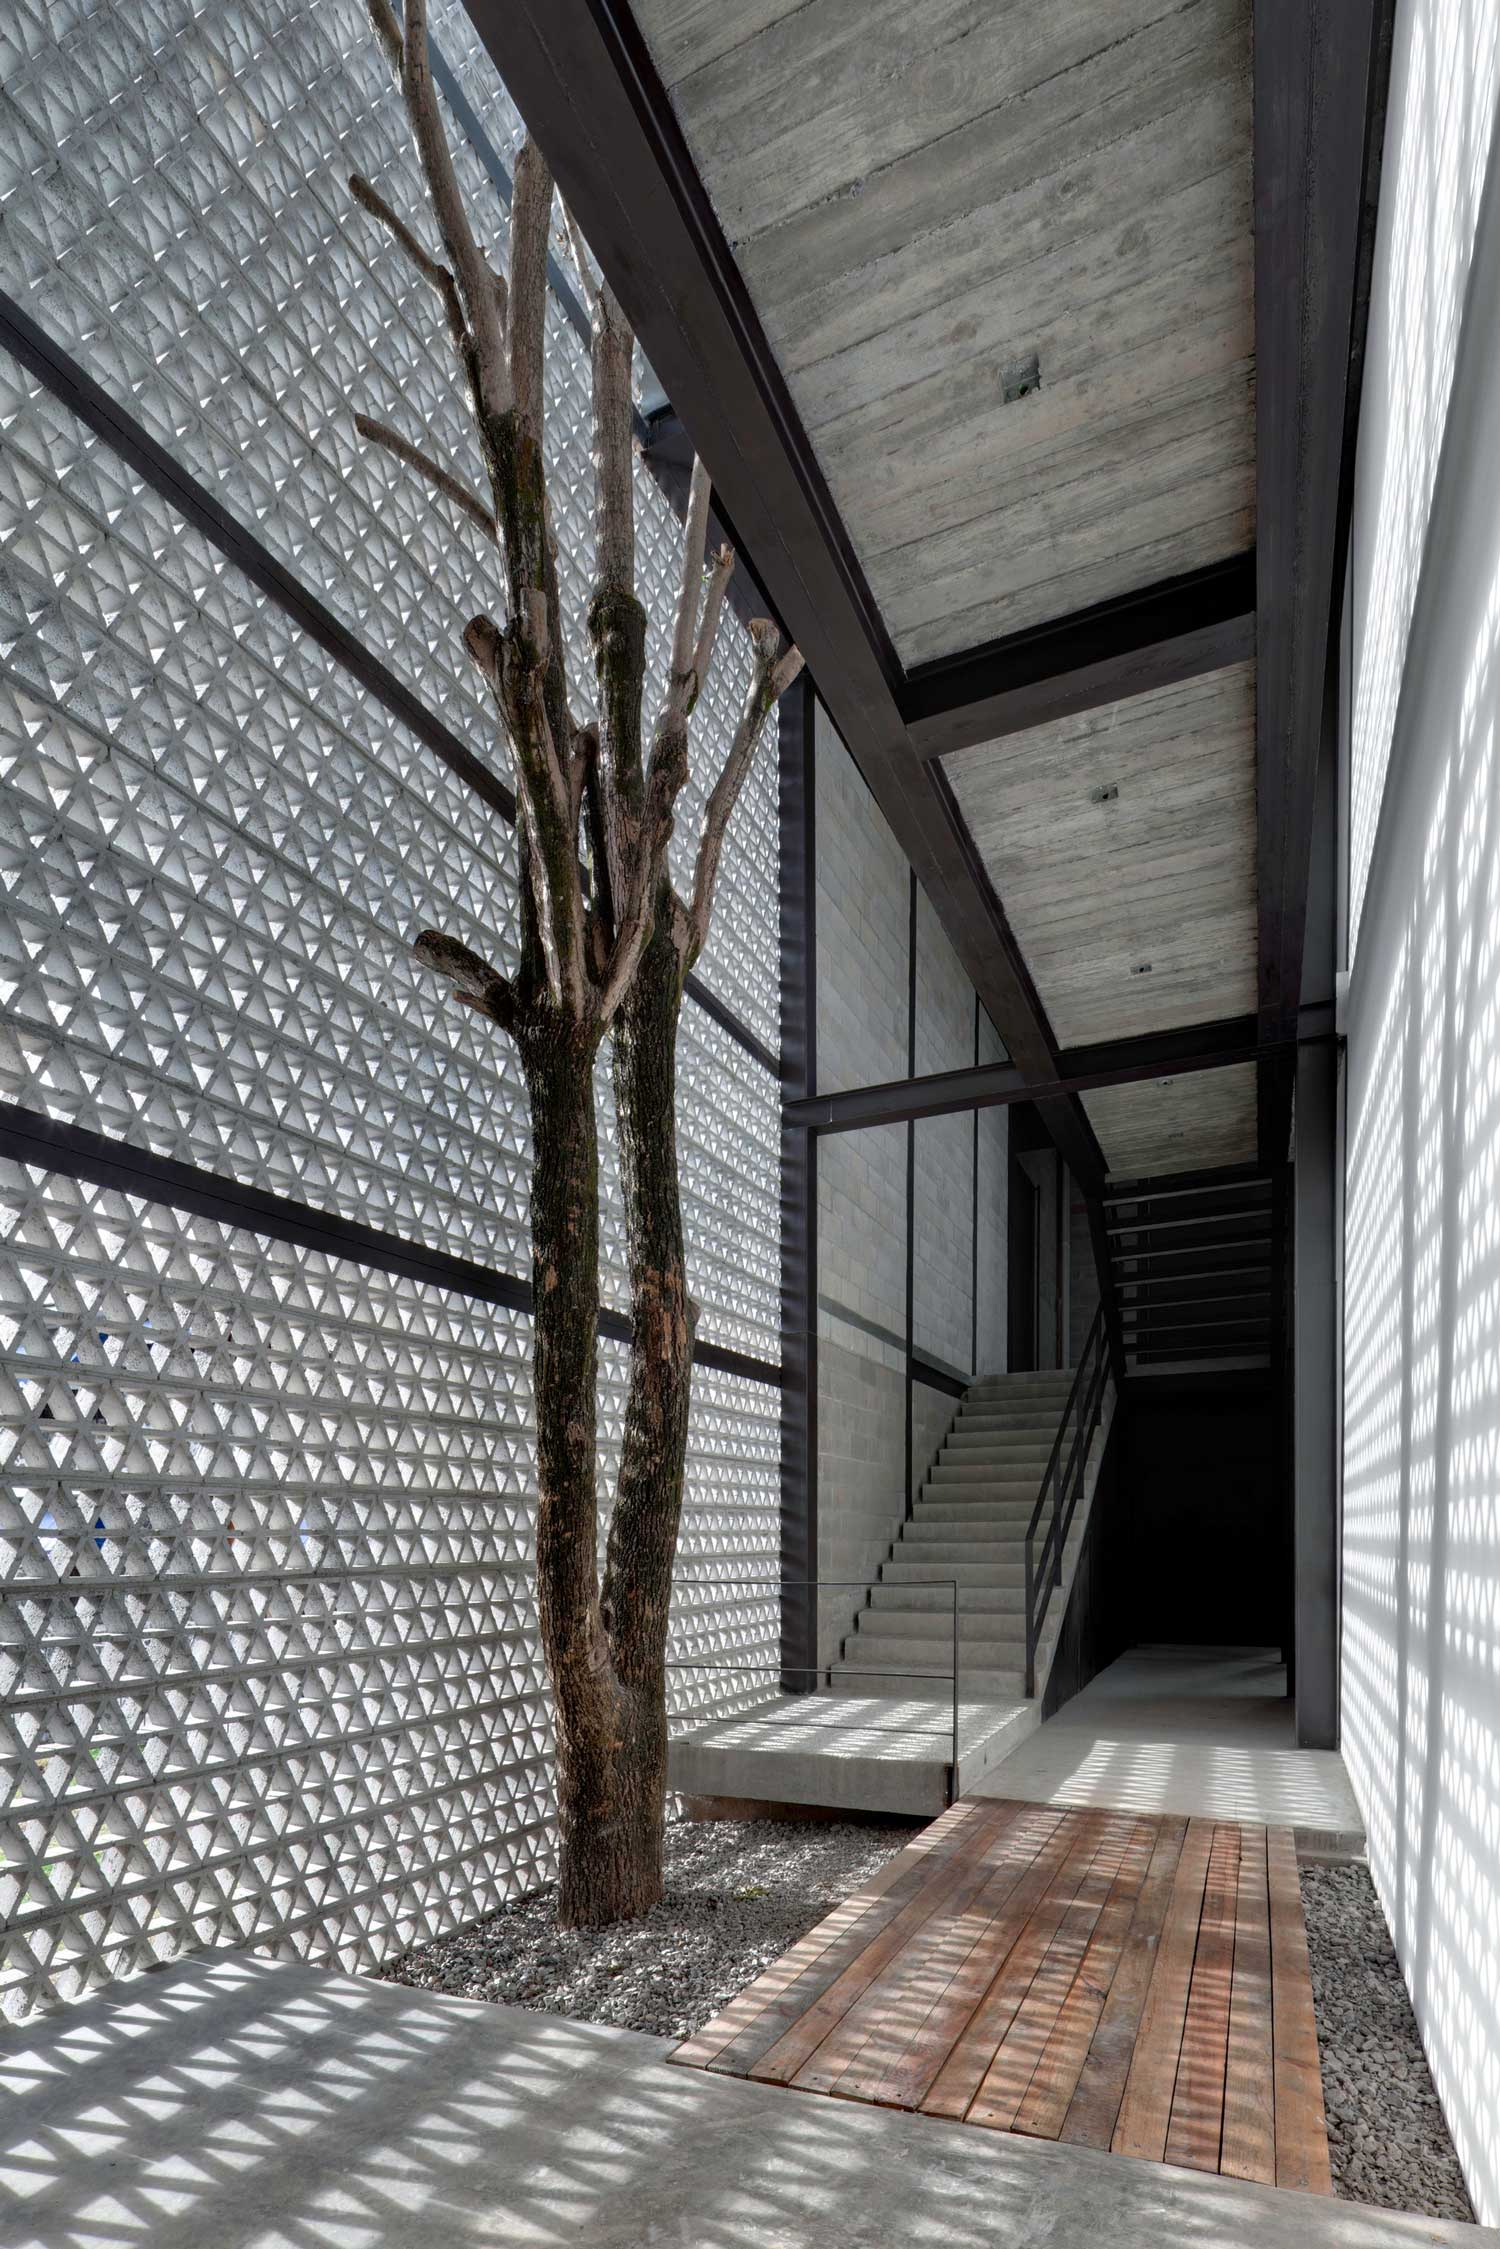 La Tallera Gallery & Museum in Morelos, Mexico by Frida Escobedo | Yellowtrace